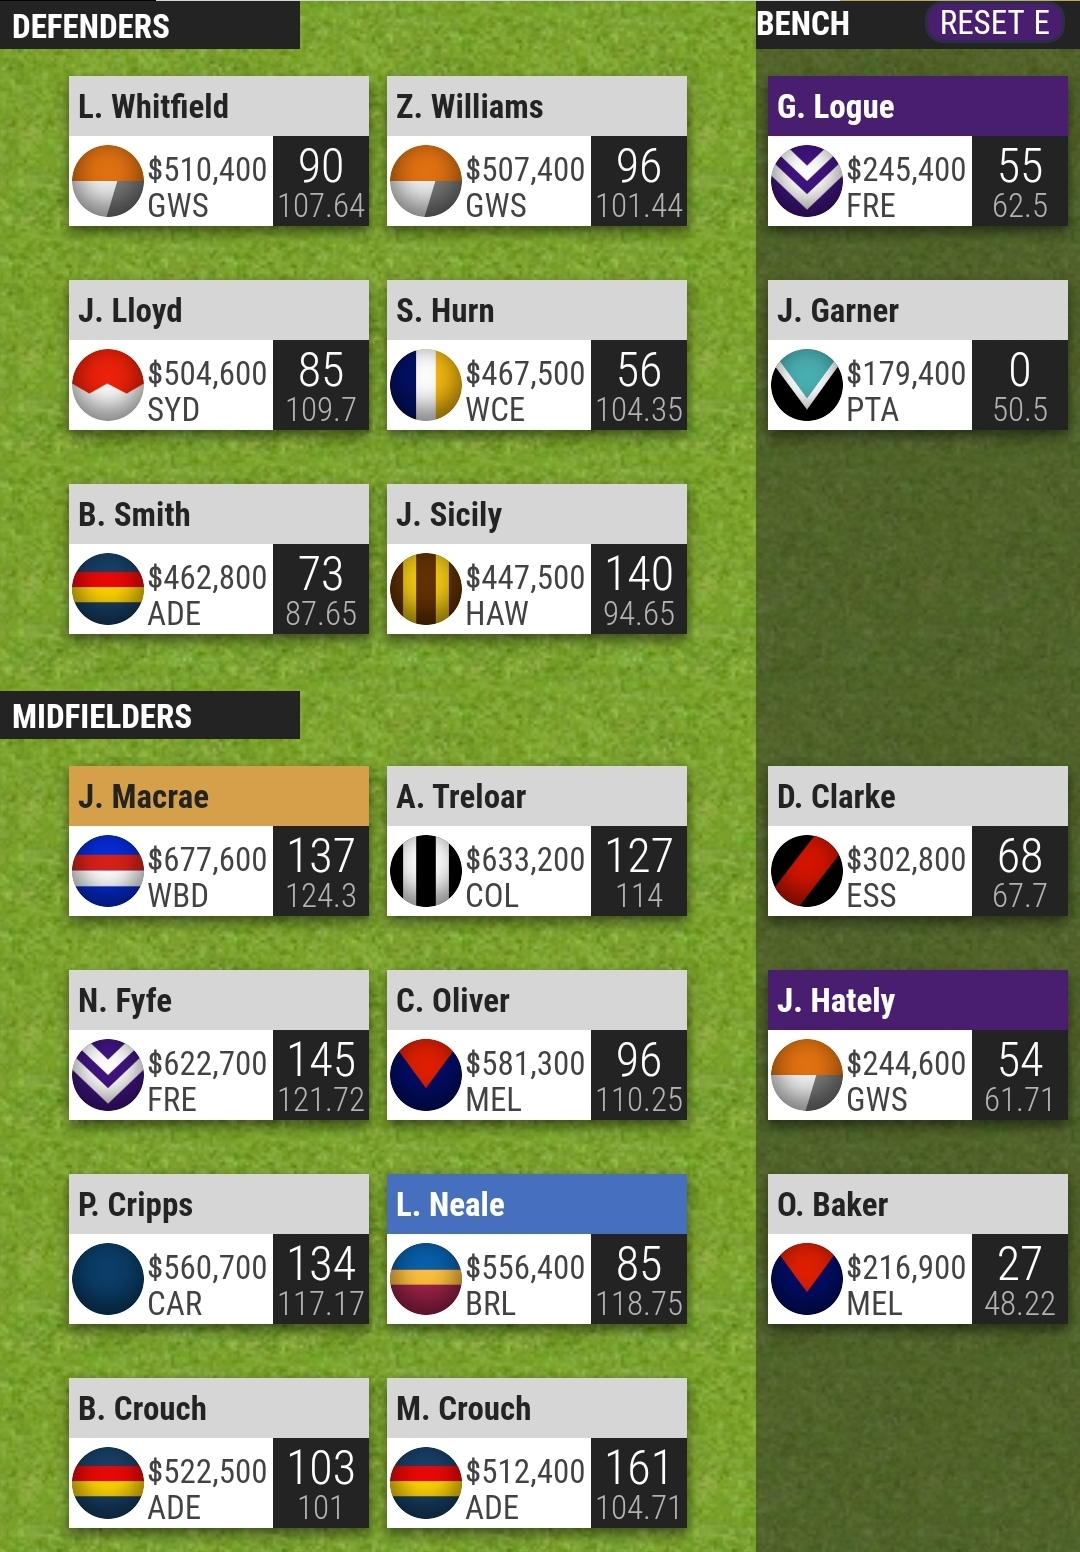 Screenshot_20190812-105140_SuperCoach.jpg